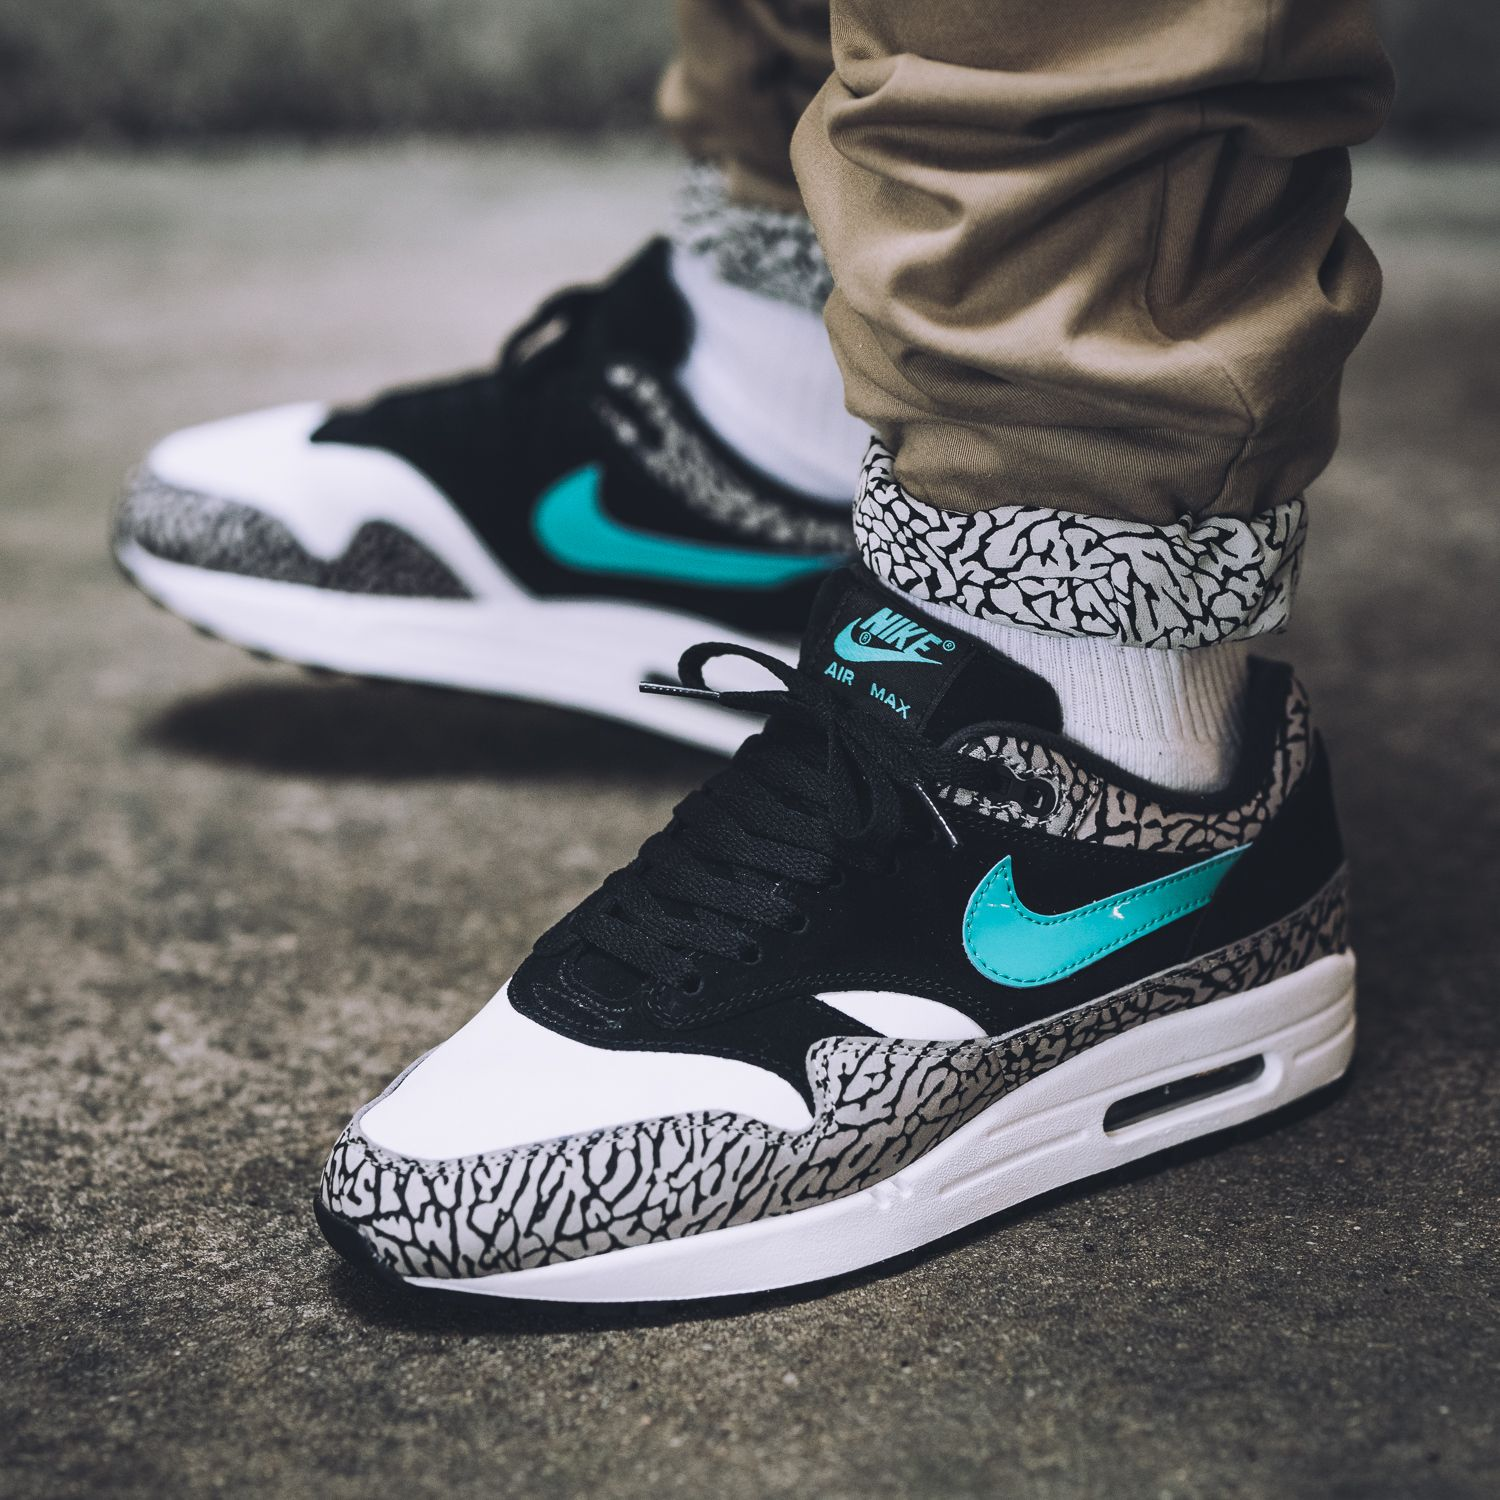 A Detailed Look at the atmos x Nike Air Max 1 'Elephant Print' with